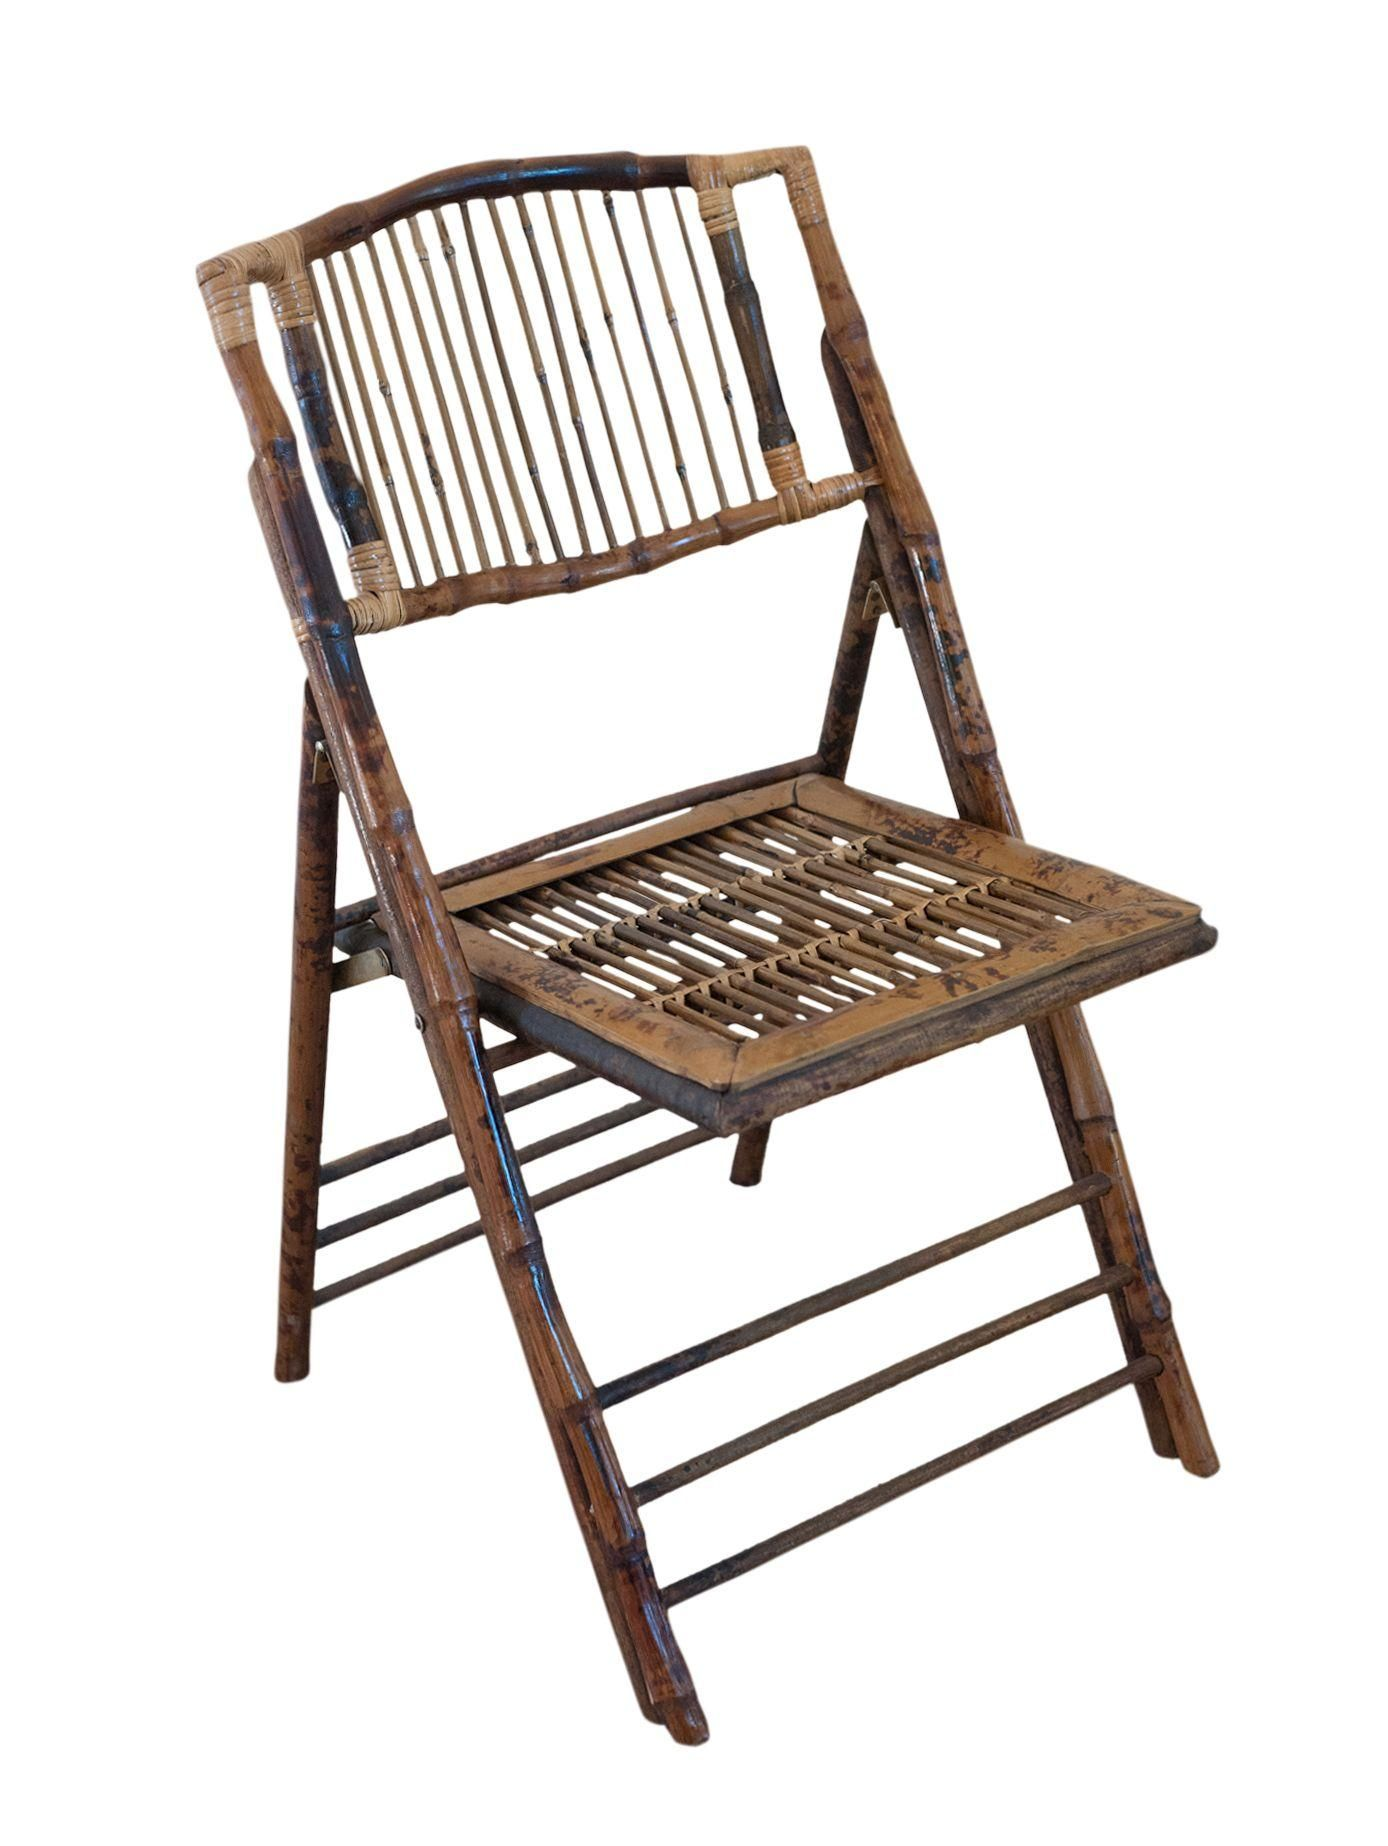 Vintage Tortoise Shell Bamboo Folding Chair on Chairish